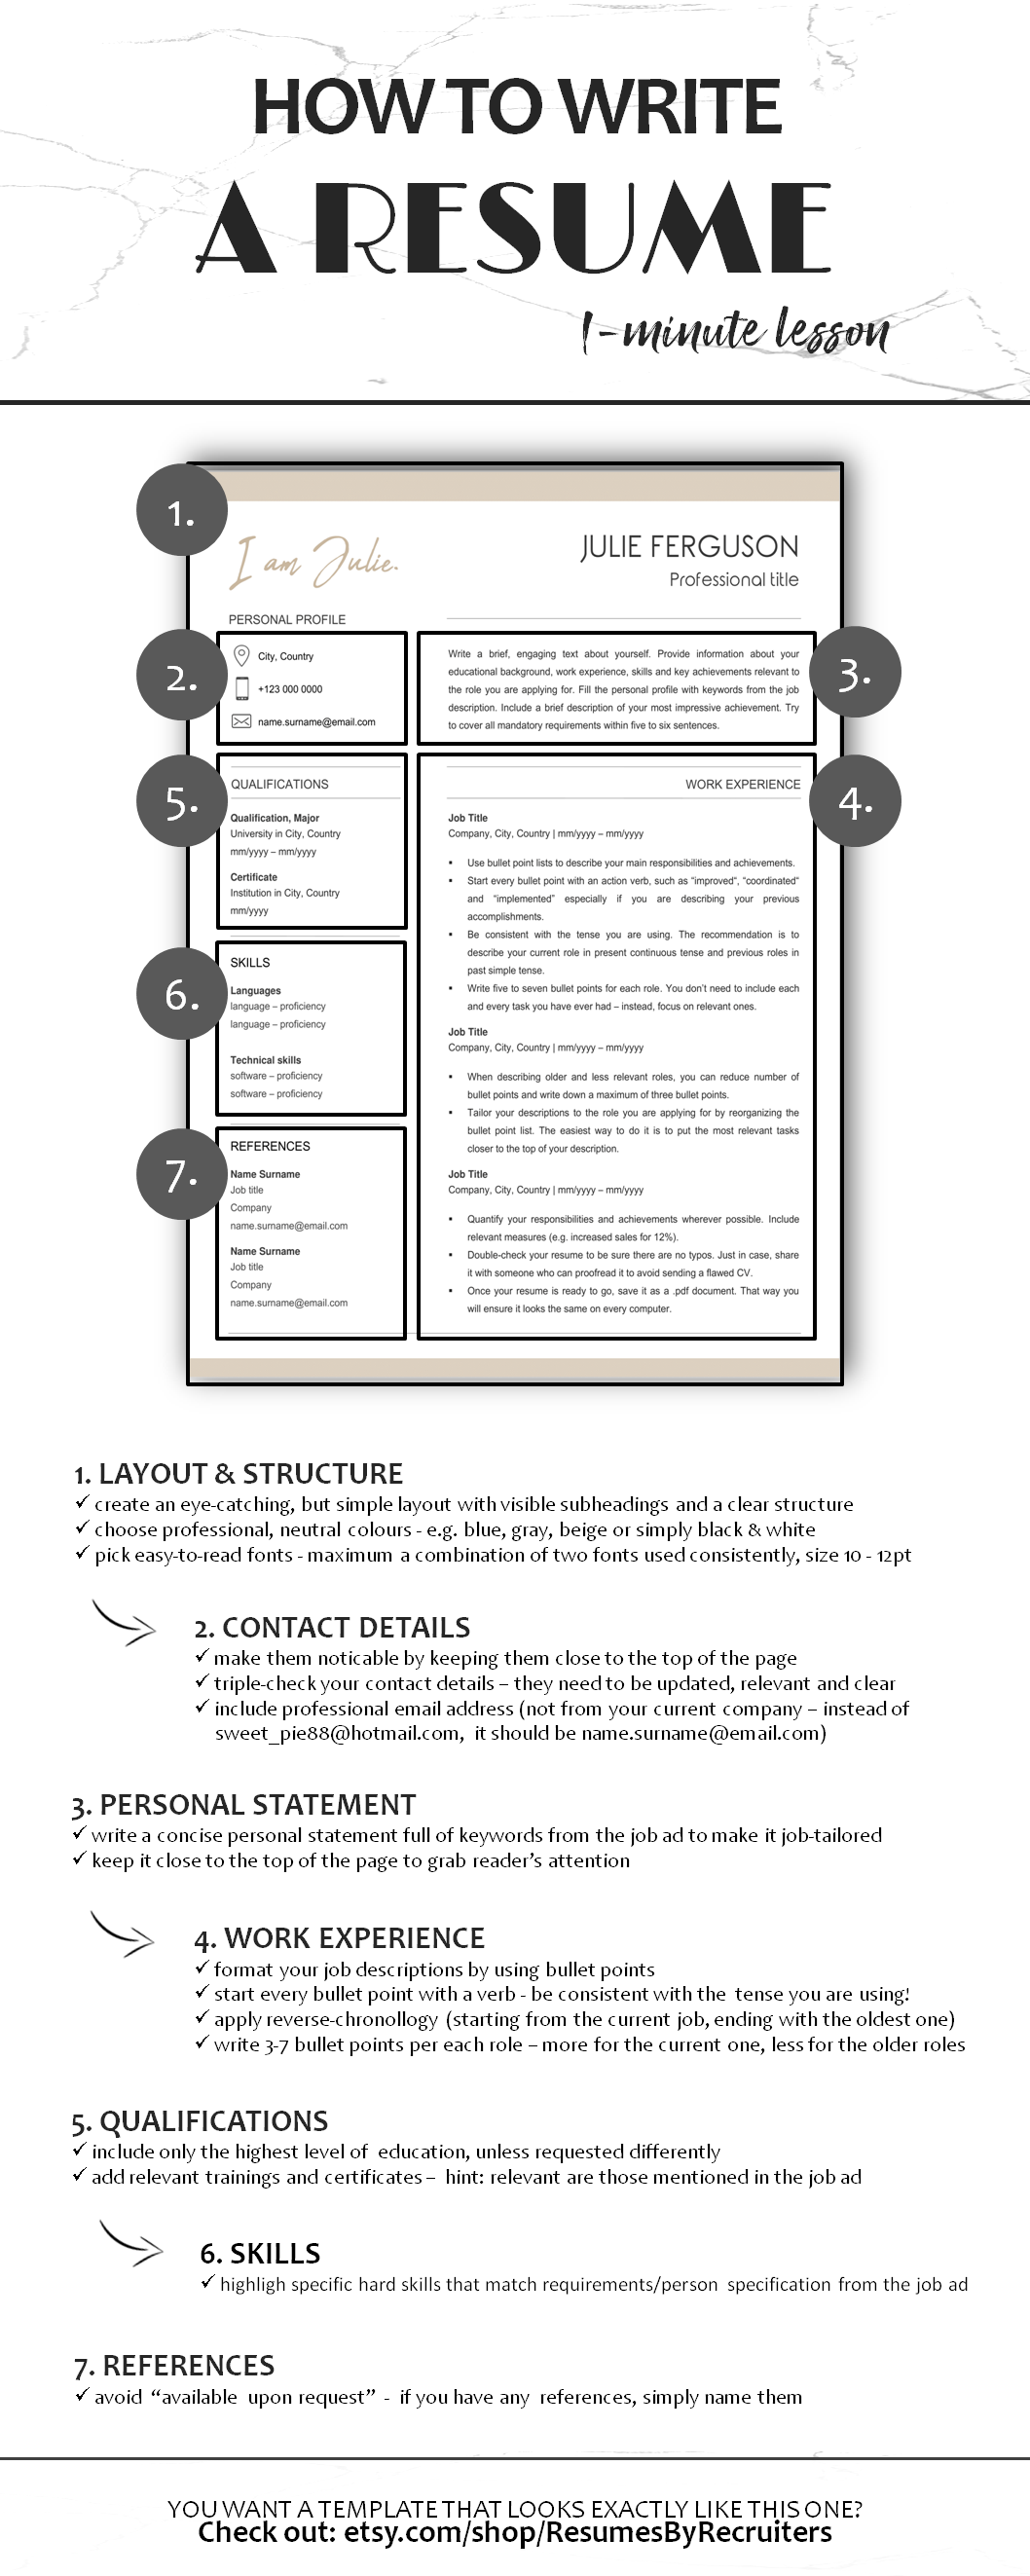 creative resume template word    instant download    social media cv    free resume writing